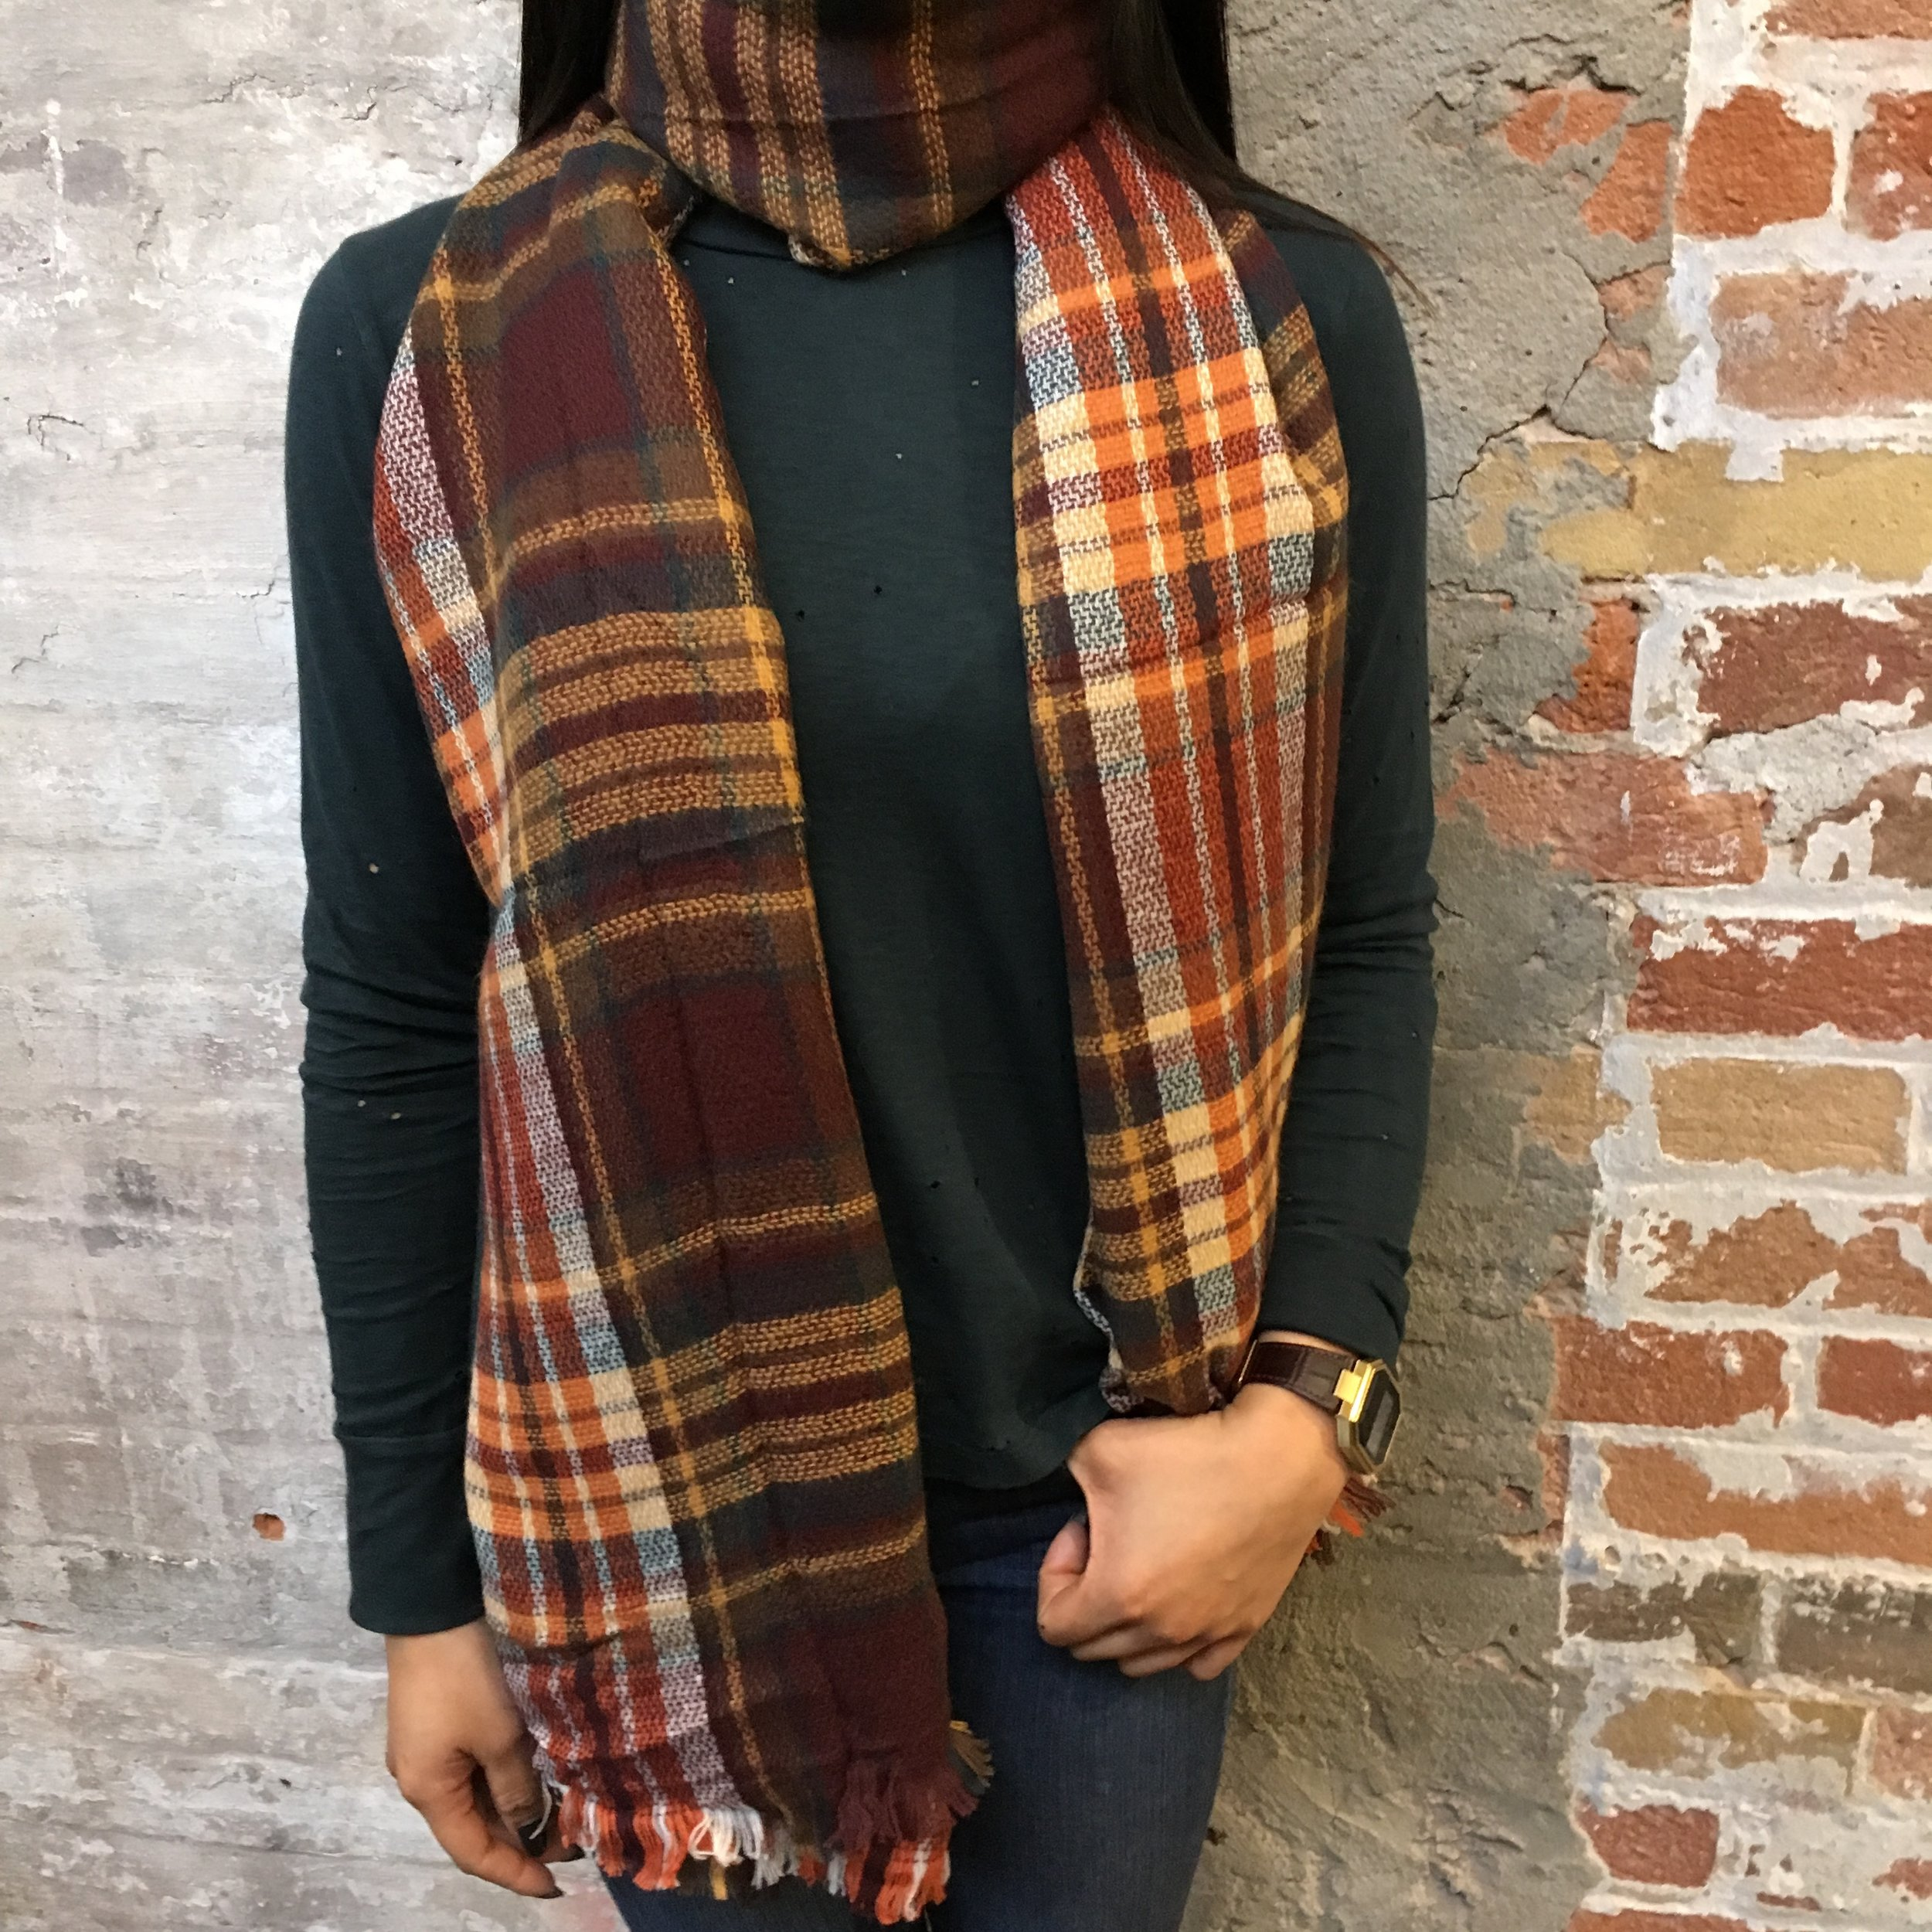 The Go To: Just wrap your scarf around and let the two ends drape in front of you. This simple yet elegant look can be adjusted for however loose or tight you want the neck to be. Works well with jackets but can also be transitioned to an elegant look with a skinnier scarf.